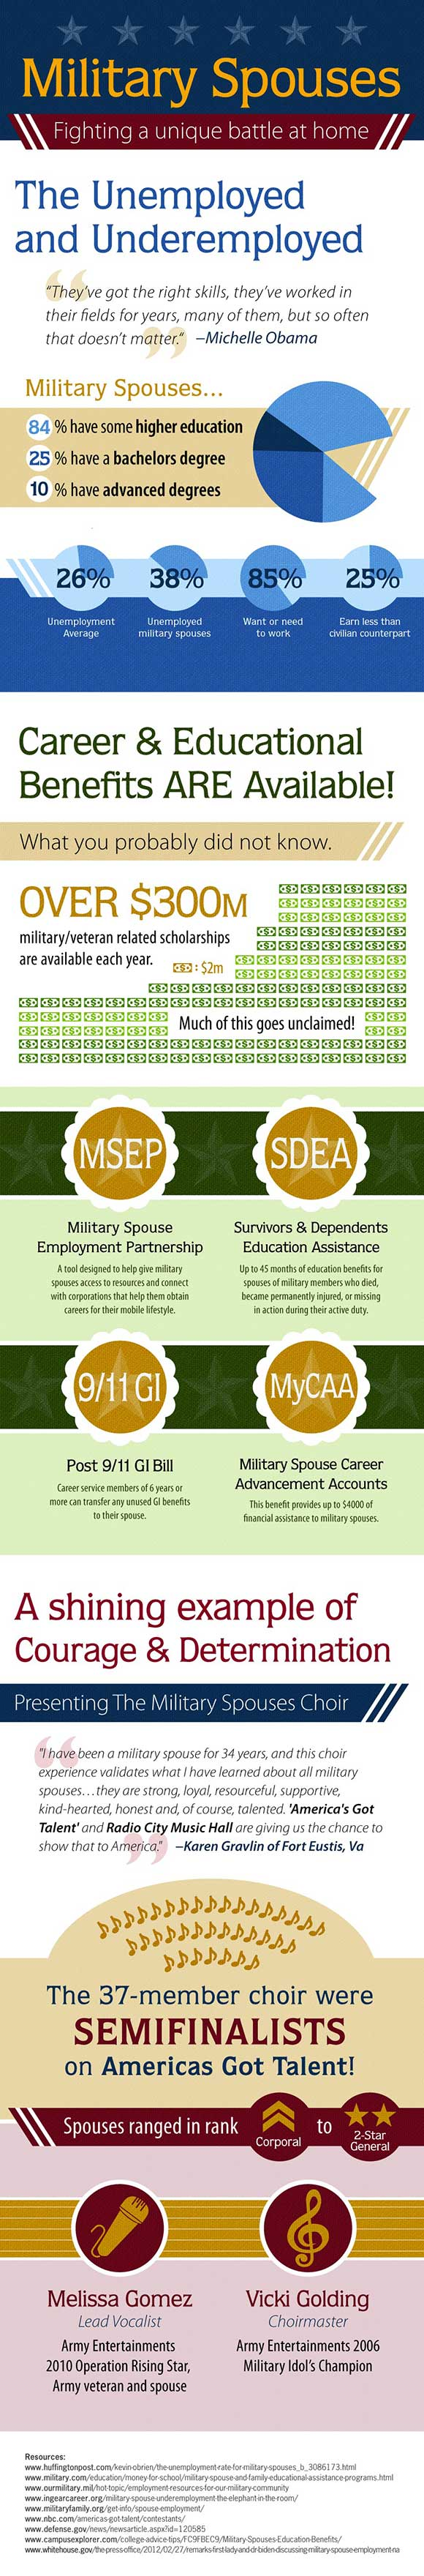 infographic on military spouse benefits